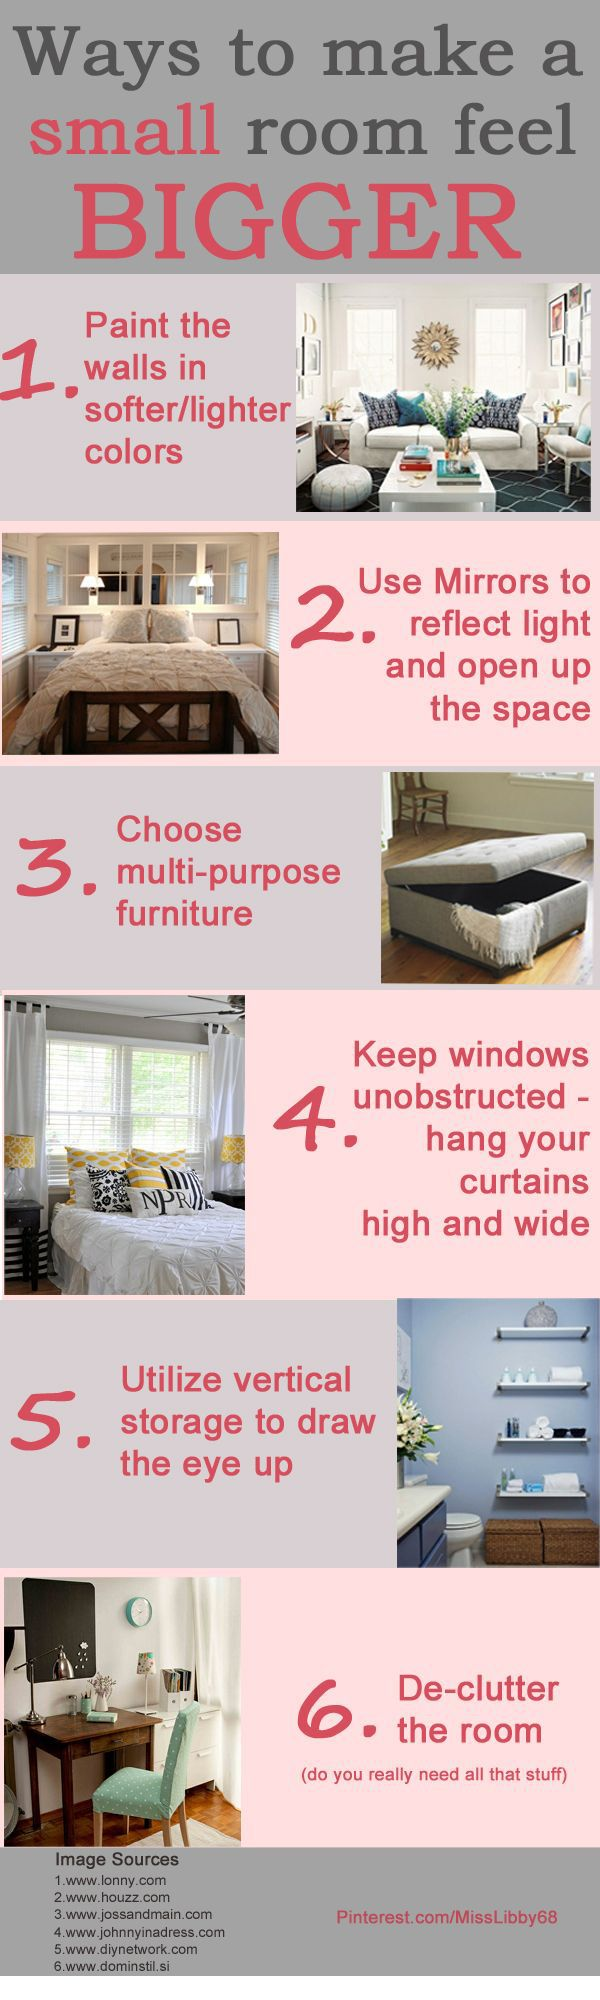 20 Bedroom Organization Tips To Make The Most Of A Small Space. Best 25  Small bedrooms ideas on Pinterest   Small bedroom storage